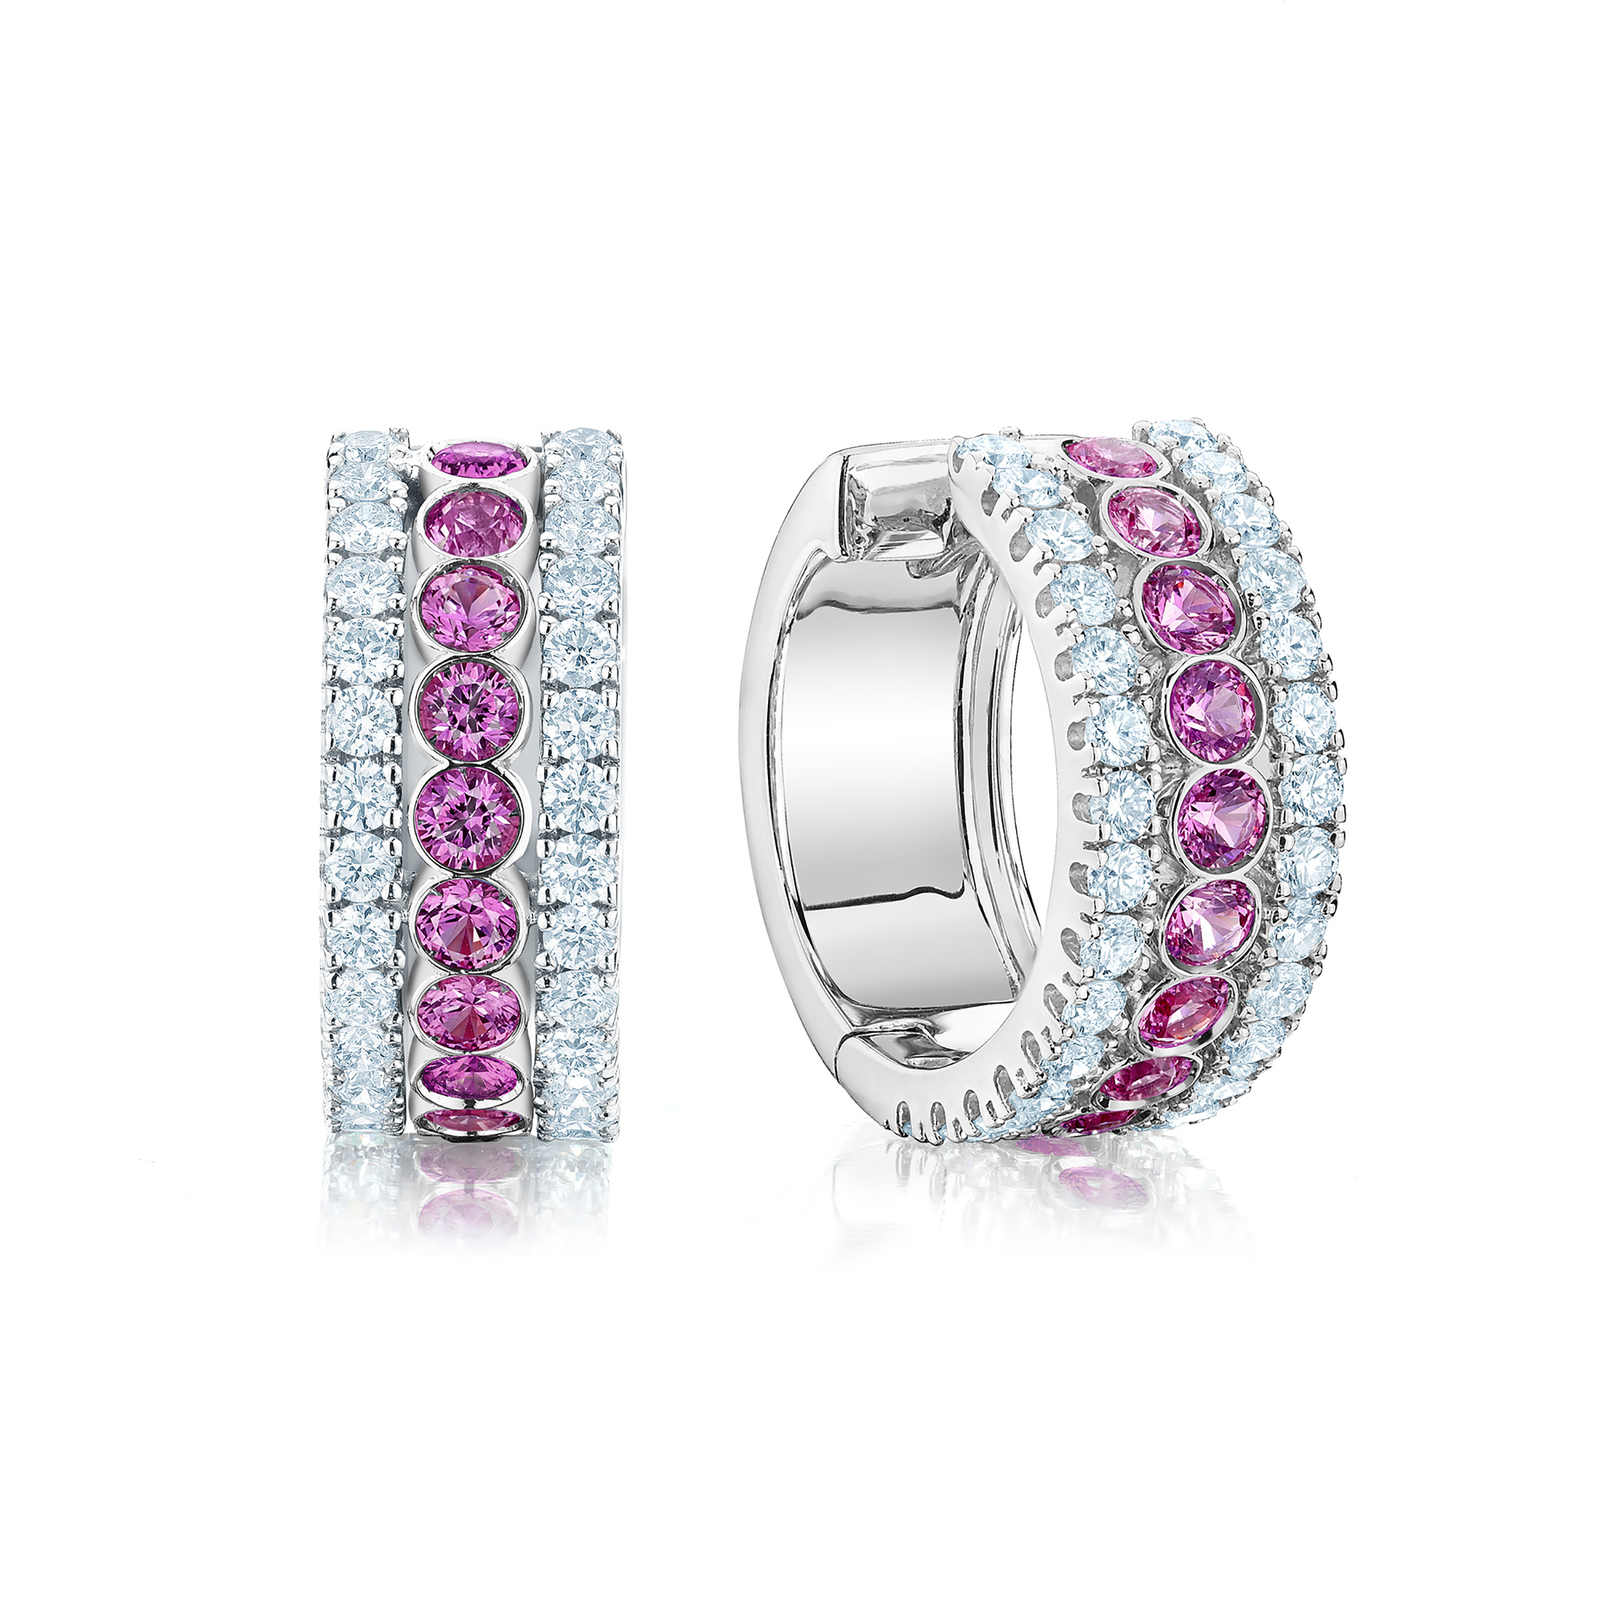 Birks Splash 0.66ct Diamond and Pink Sapphire Hoop Earrings